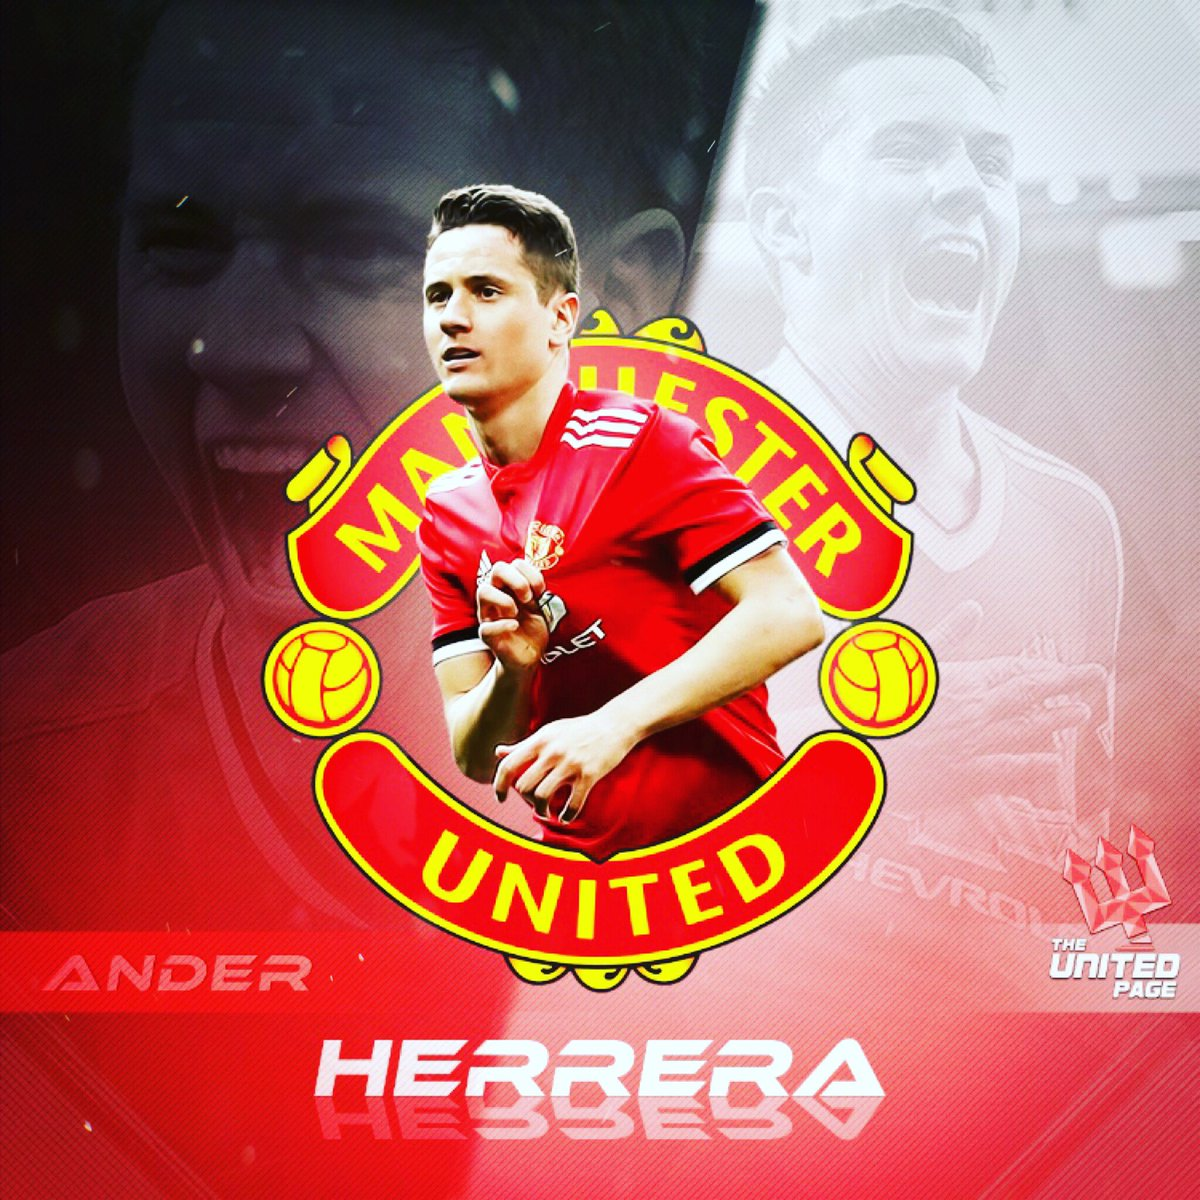 Ander Page Videos anderherrera hashtag on twitter